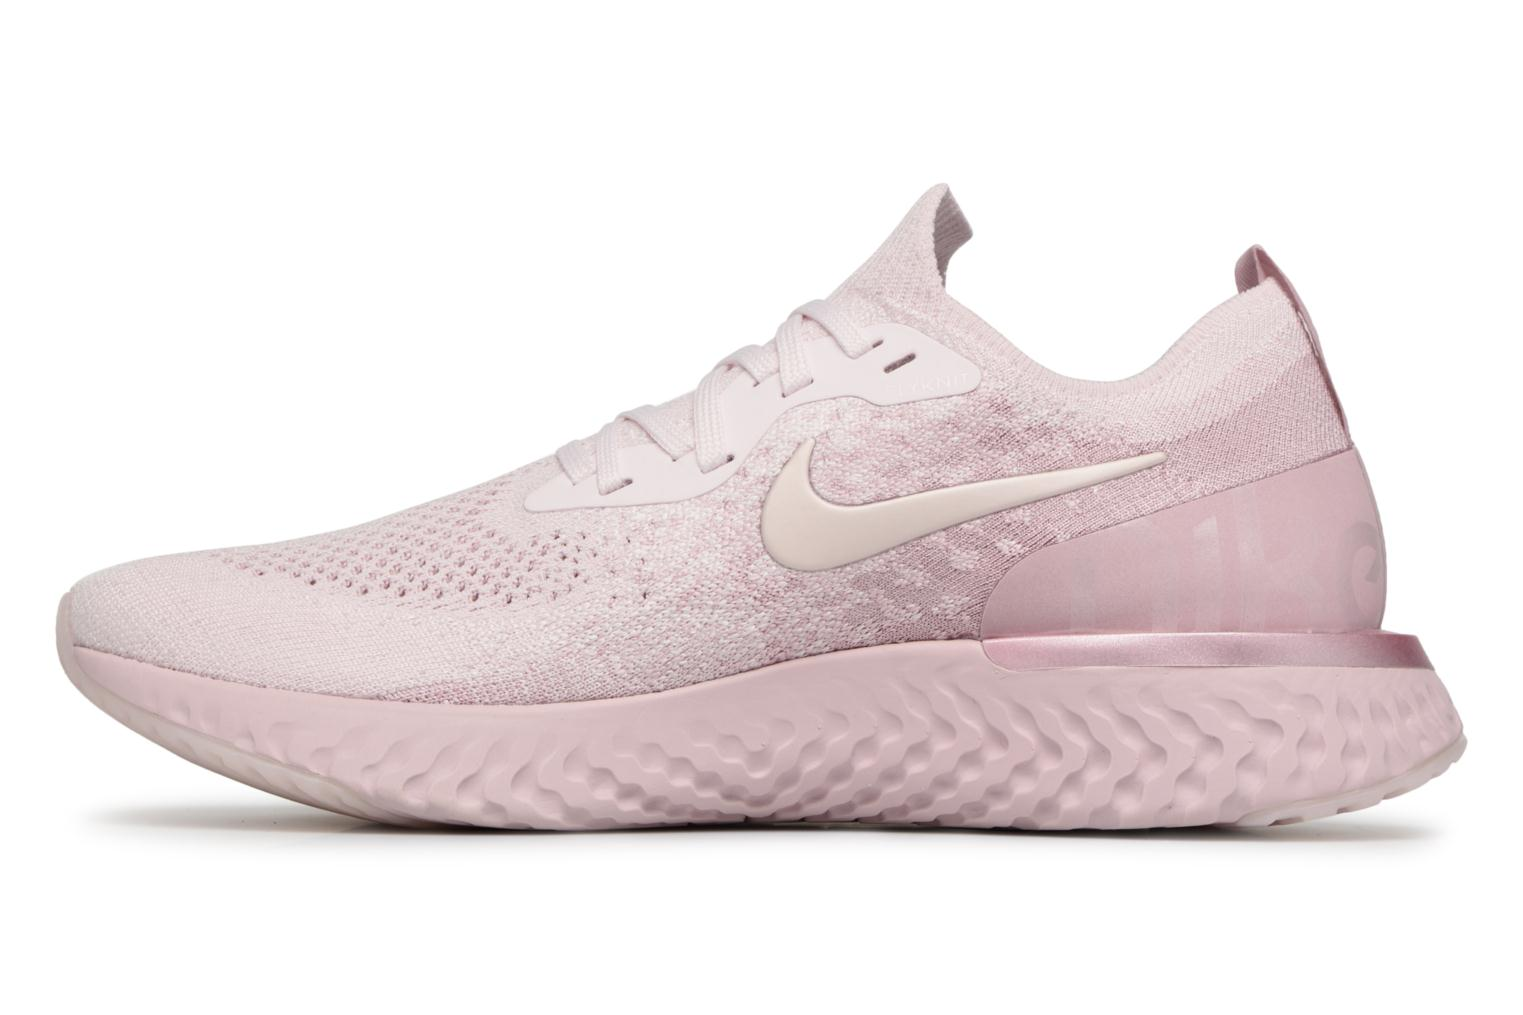 Chaussures de sport Nike Nike Epic React Flyknit Rose vue face